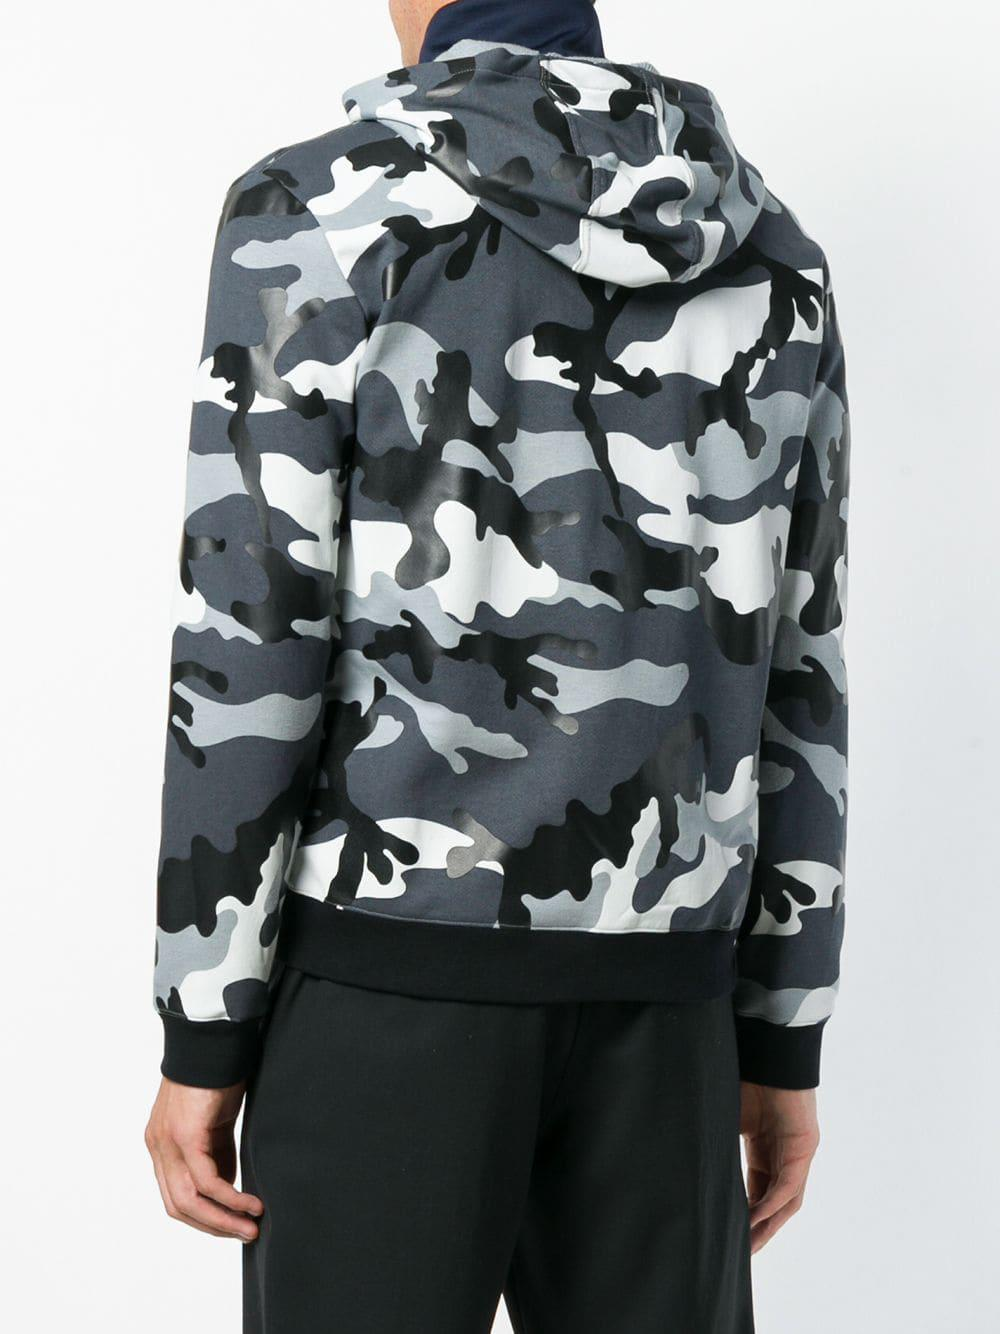 a545d7e55 Valentino Camouflage Print Zipped Hoodie in Gray for Men - Save  7.459338194054965% - Lyst